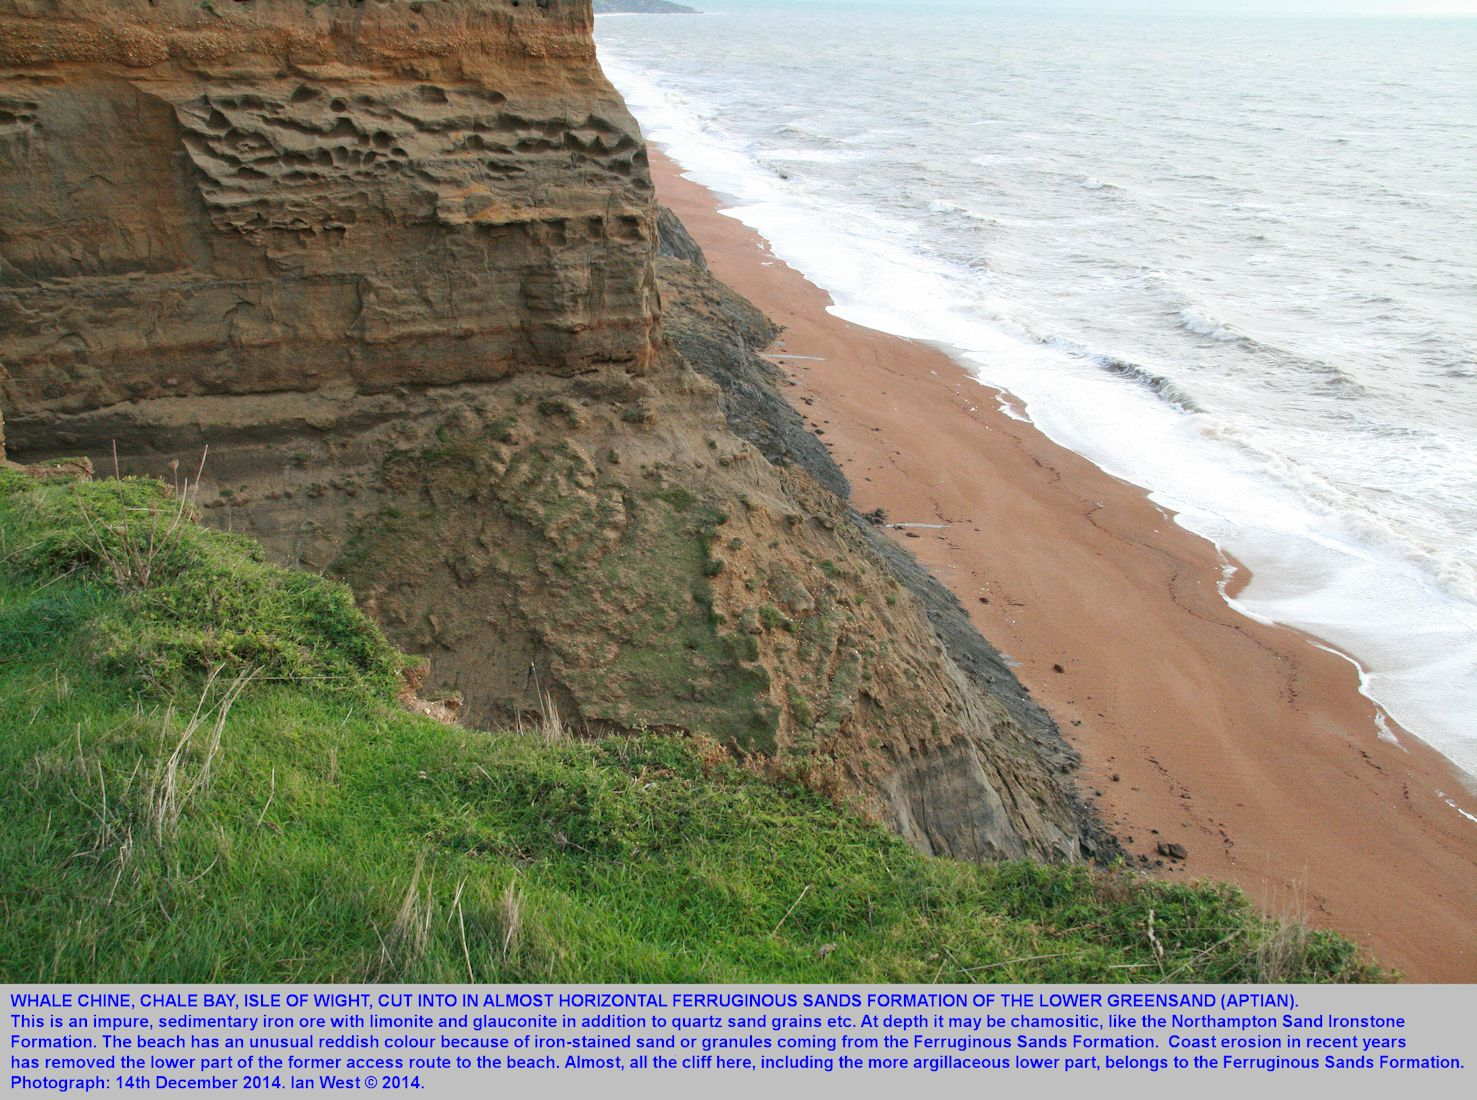 The mouth of Whale Chine, Chale Bay, Isle of Wight,now eroded by the sea so that there is no direct access to the beach here, 14th December 2014